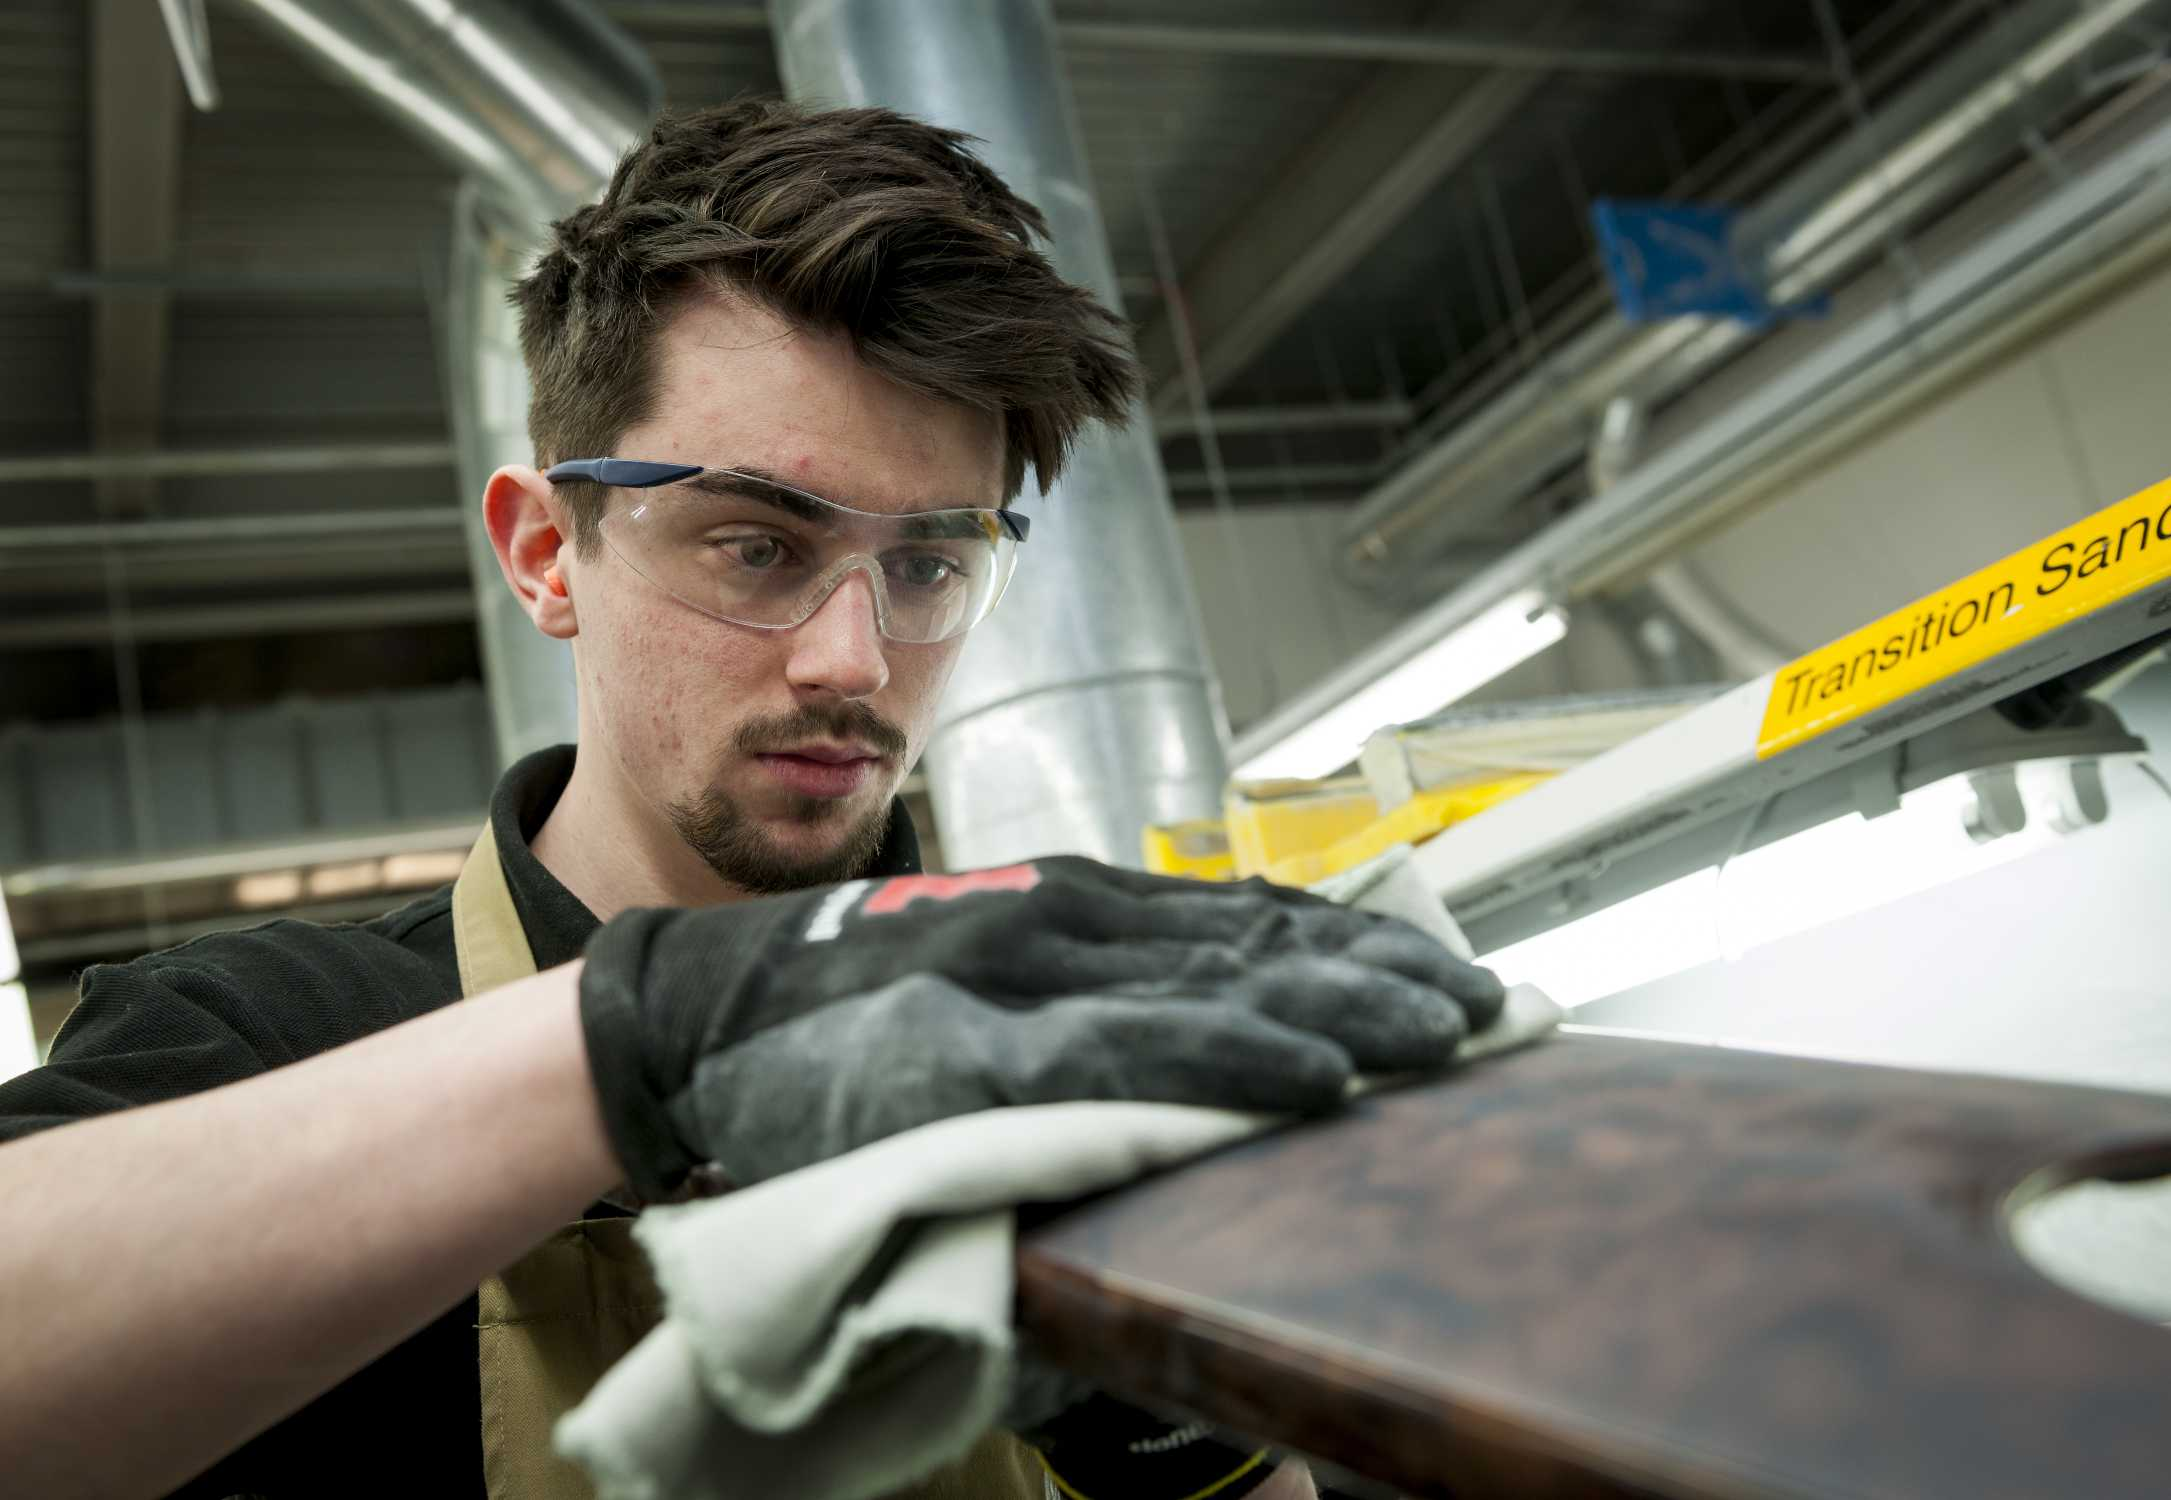 CALLUM RAFFERTY, ROLLS-ROYCE MOTOR CARS APPRENTICE